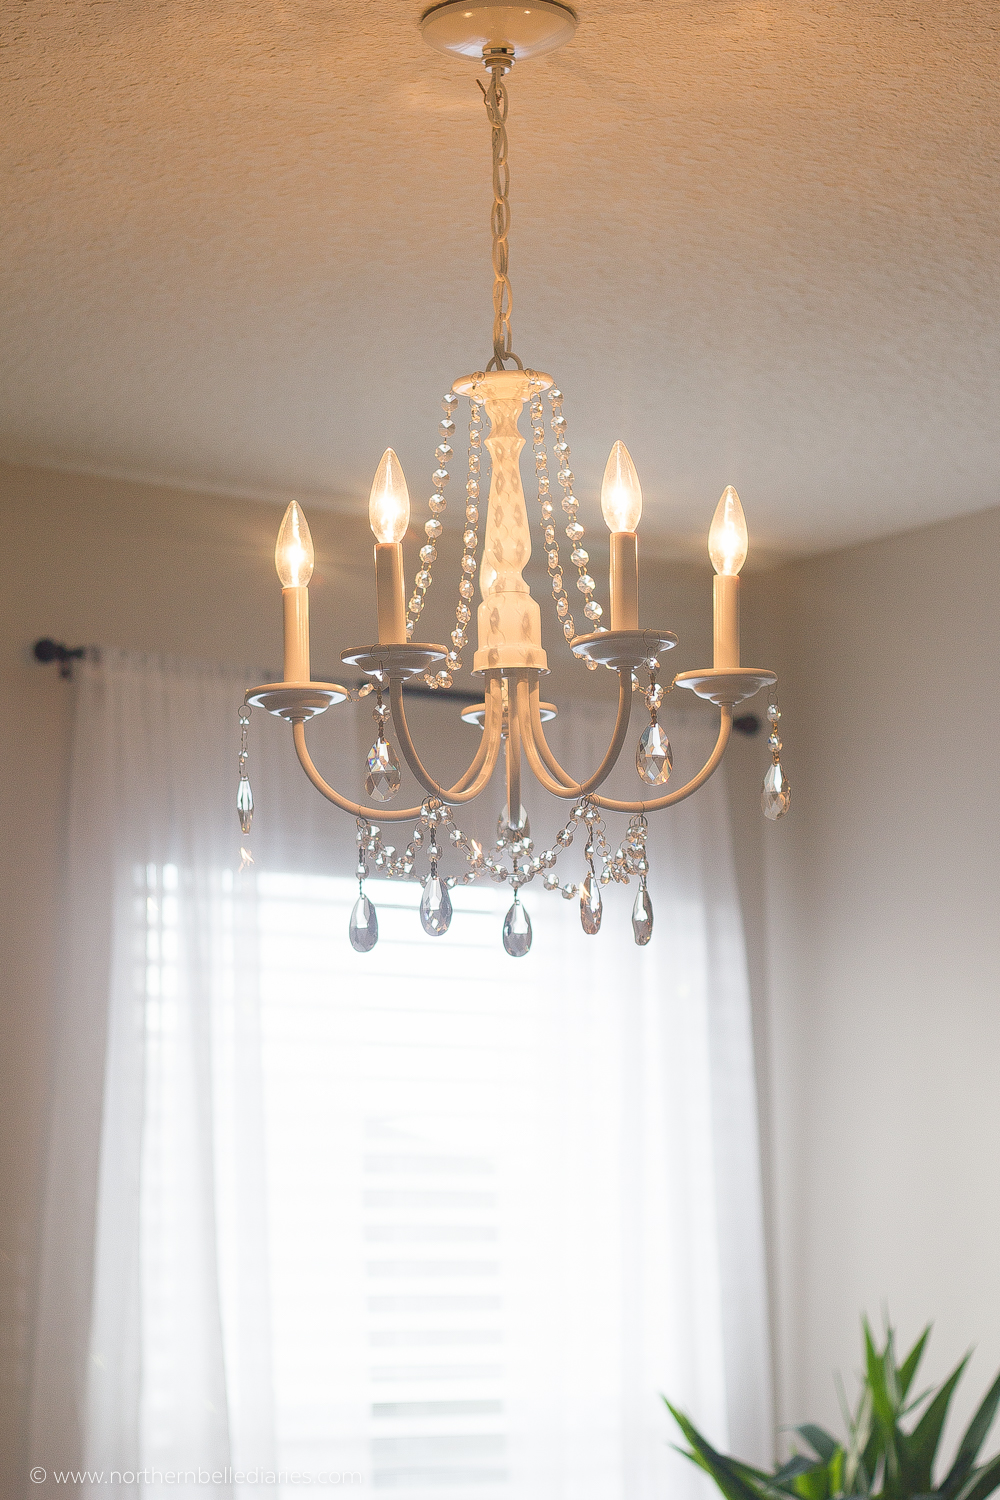 Build A Chandelier 28 Images 22 Diy 34 Chandeliers To Light Up Make Building